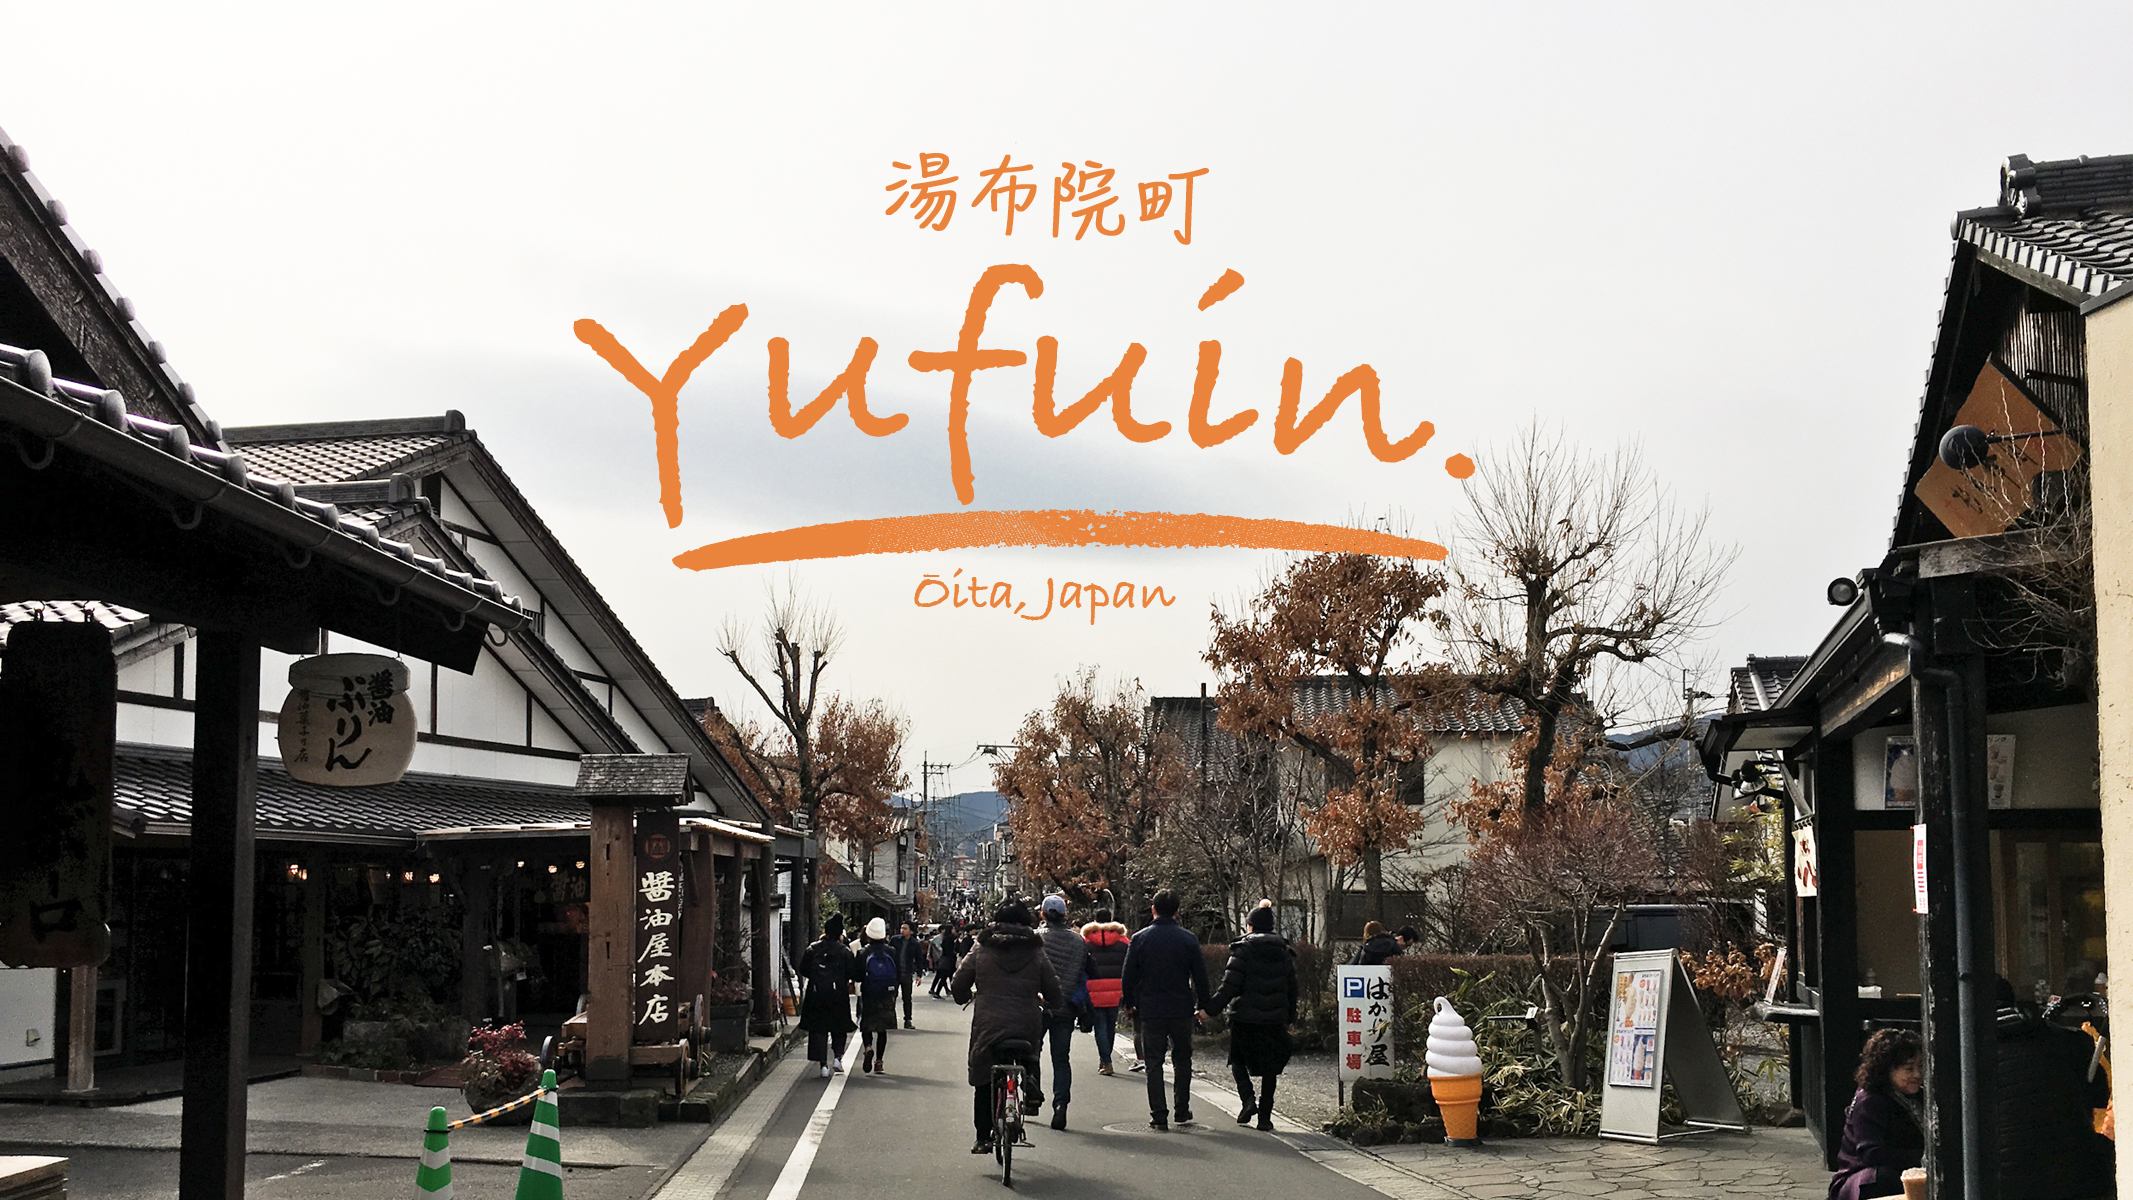 Mini Yufuin, Worth to visit!